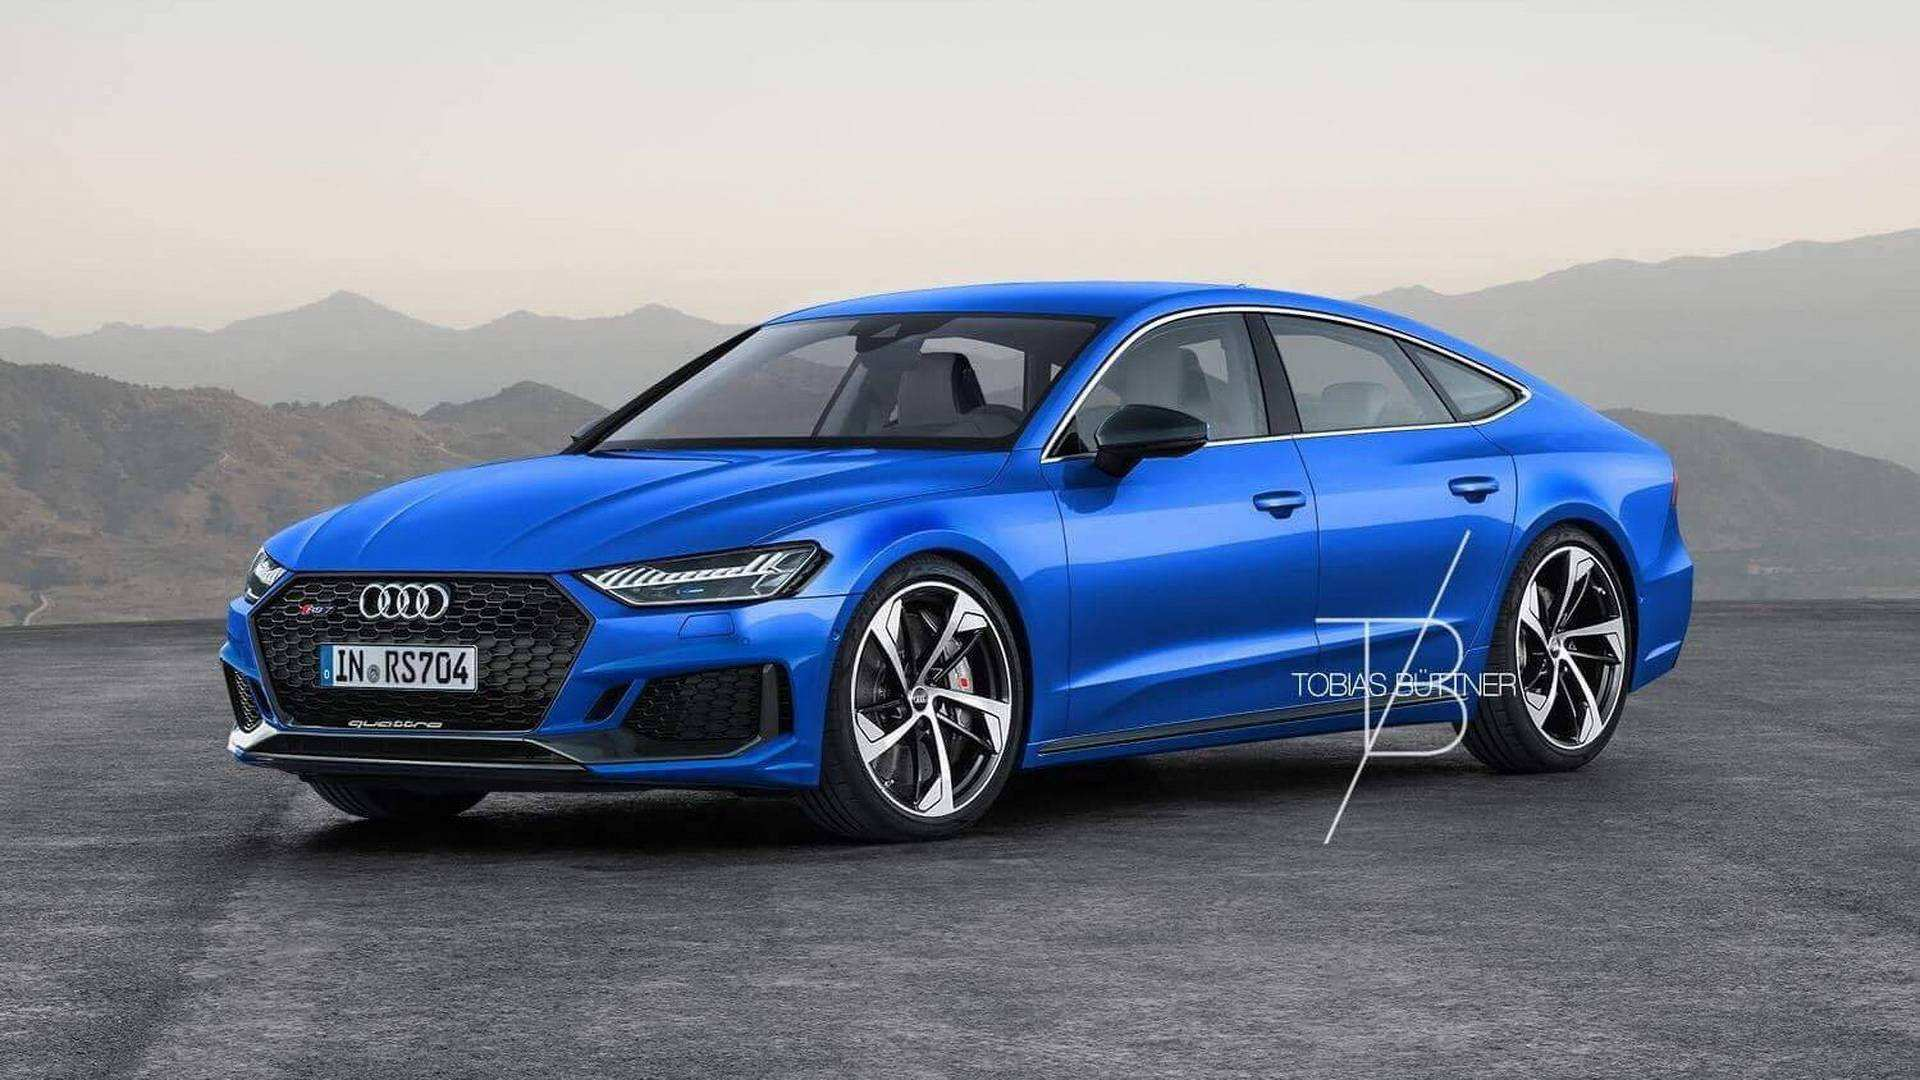 67 All New Best When Does Audi Release 2019 Models Review Specs And Release Date Specs and Review with Best When Does Audi Release 2019 Models Review Specs And Release Date